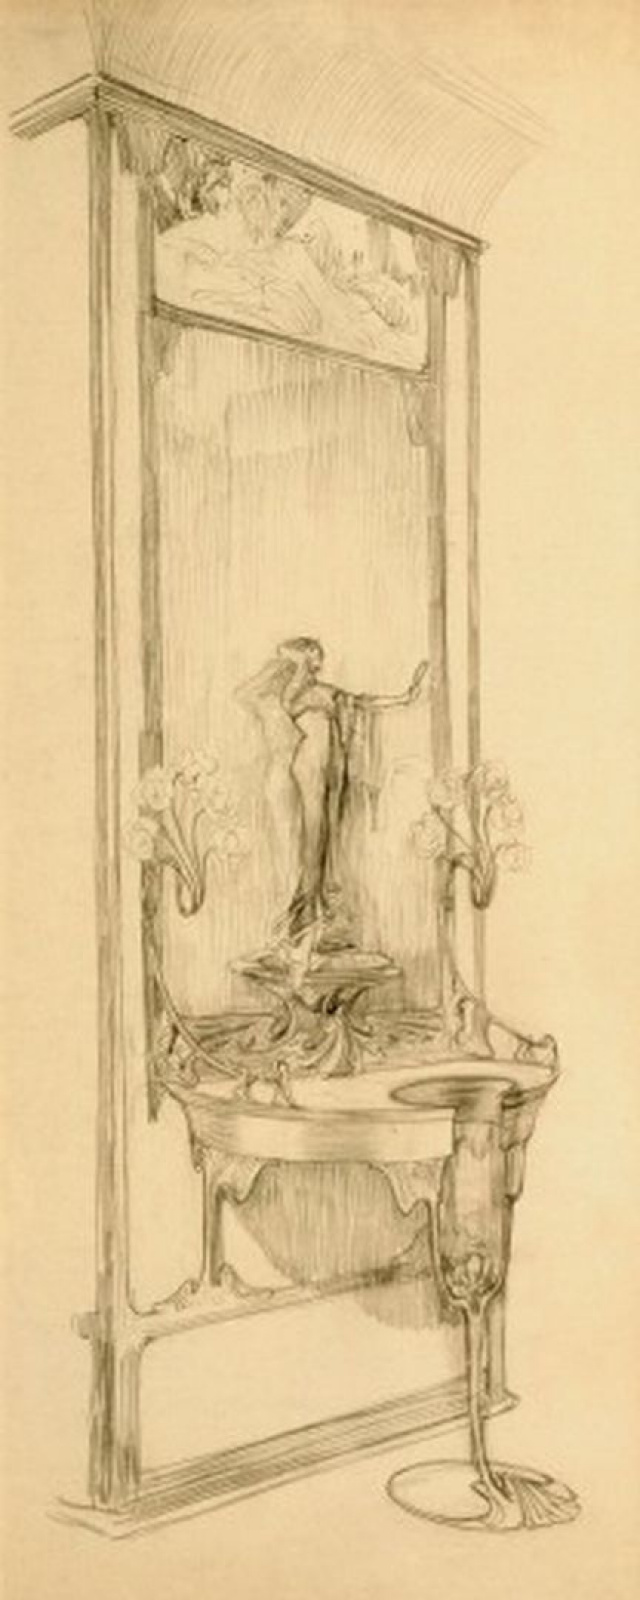 Alphonse Mucha. The interior of the jewelry store of Georges Fouquet. A sketch showcase with mirror and figurine